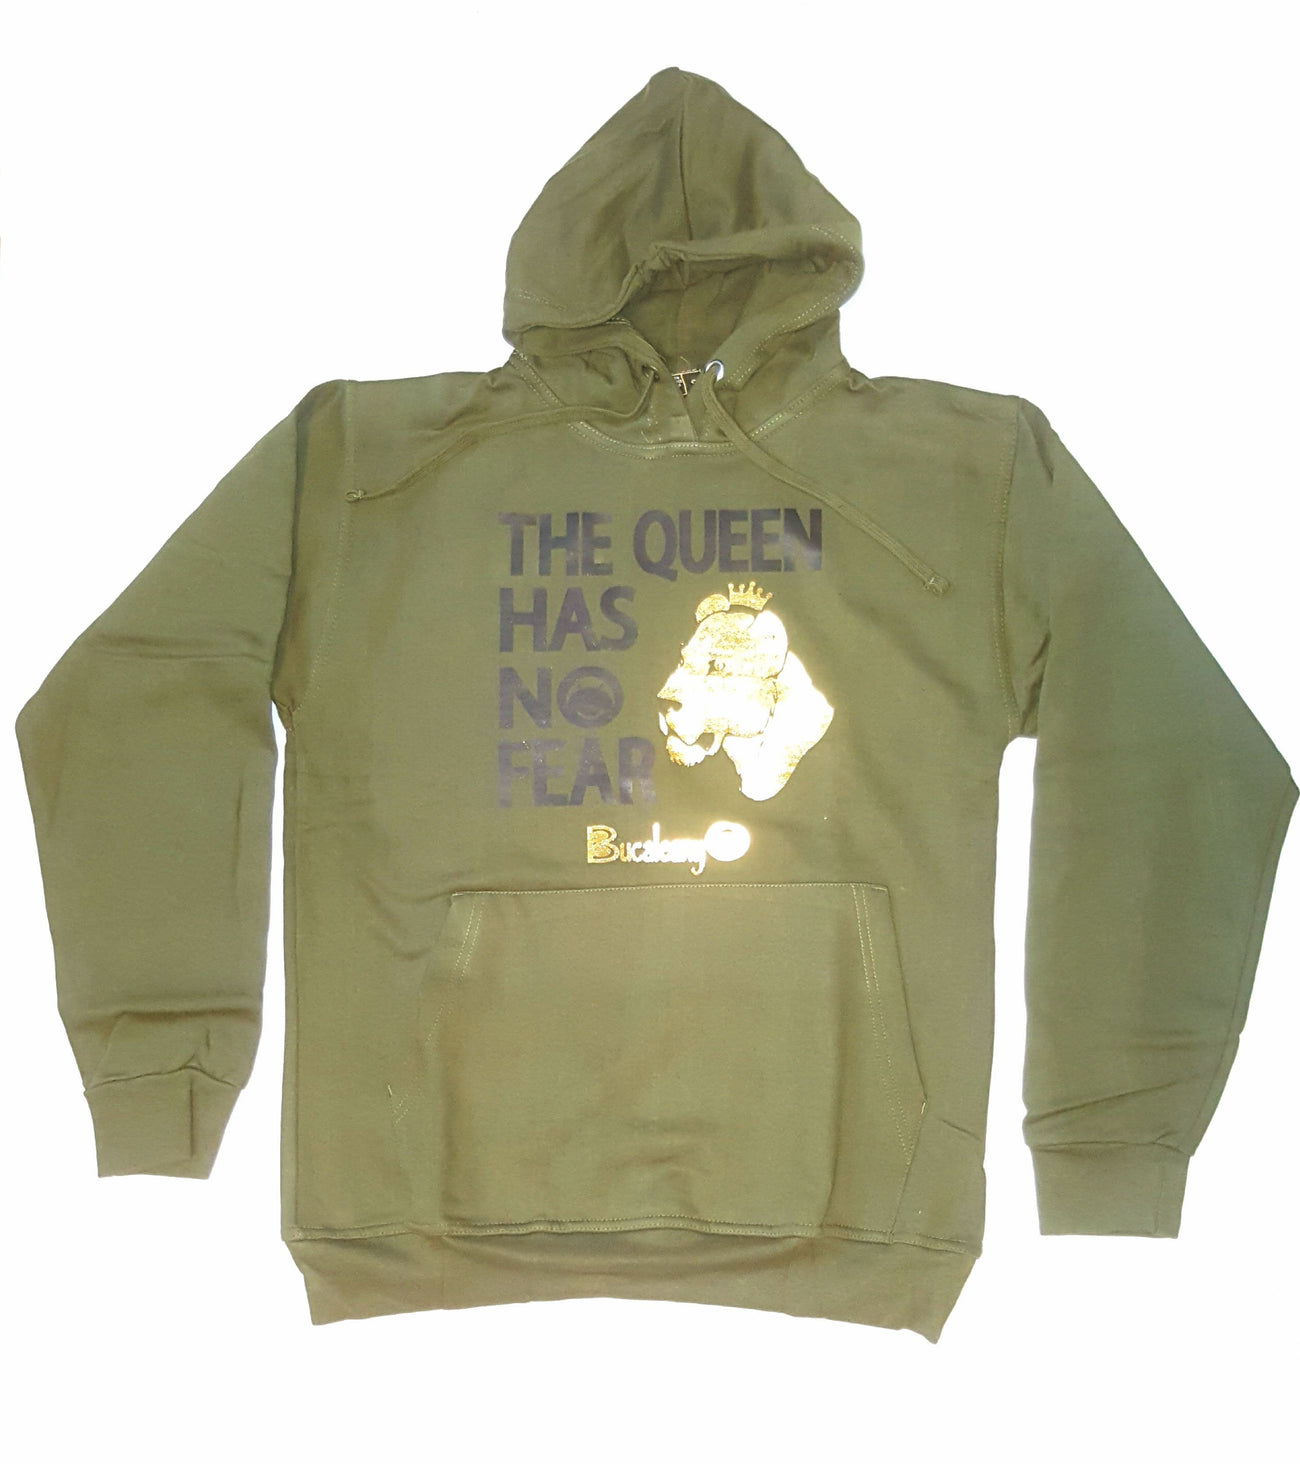 The Queen Has No Fear Hoodie - BUCALEANY